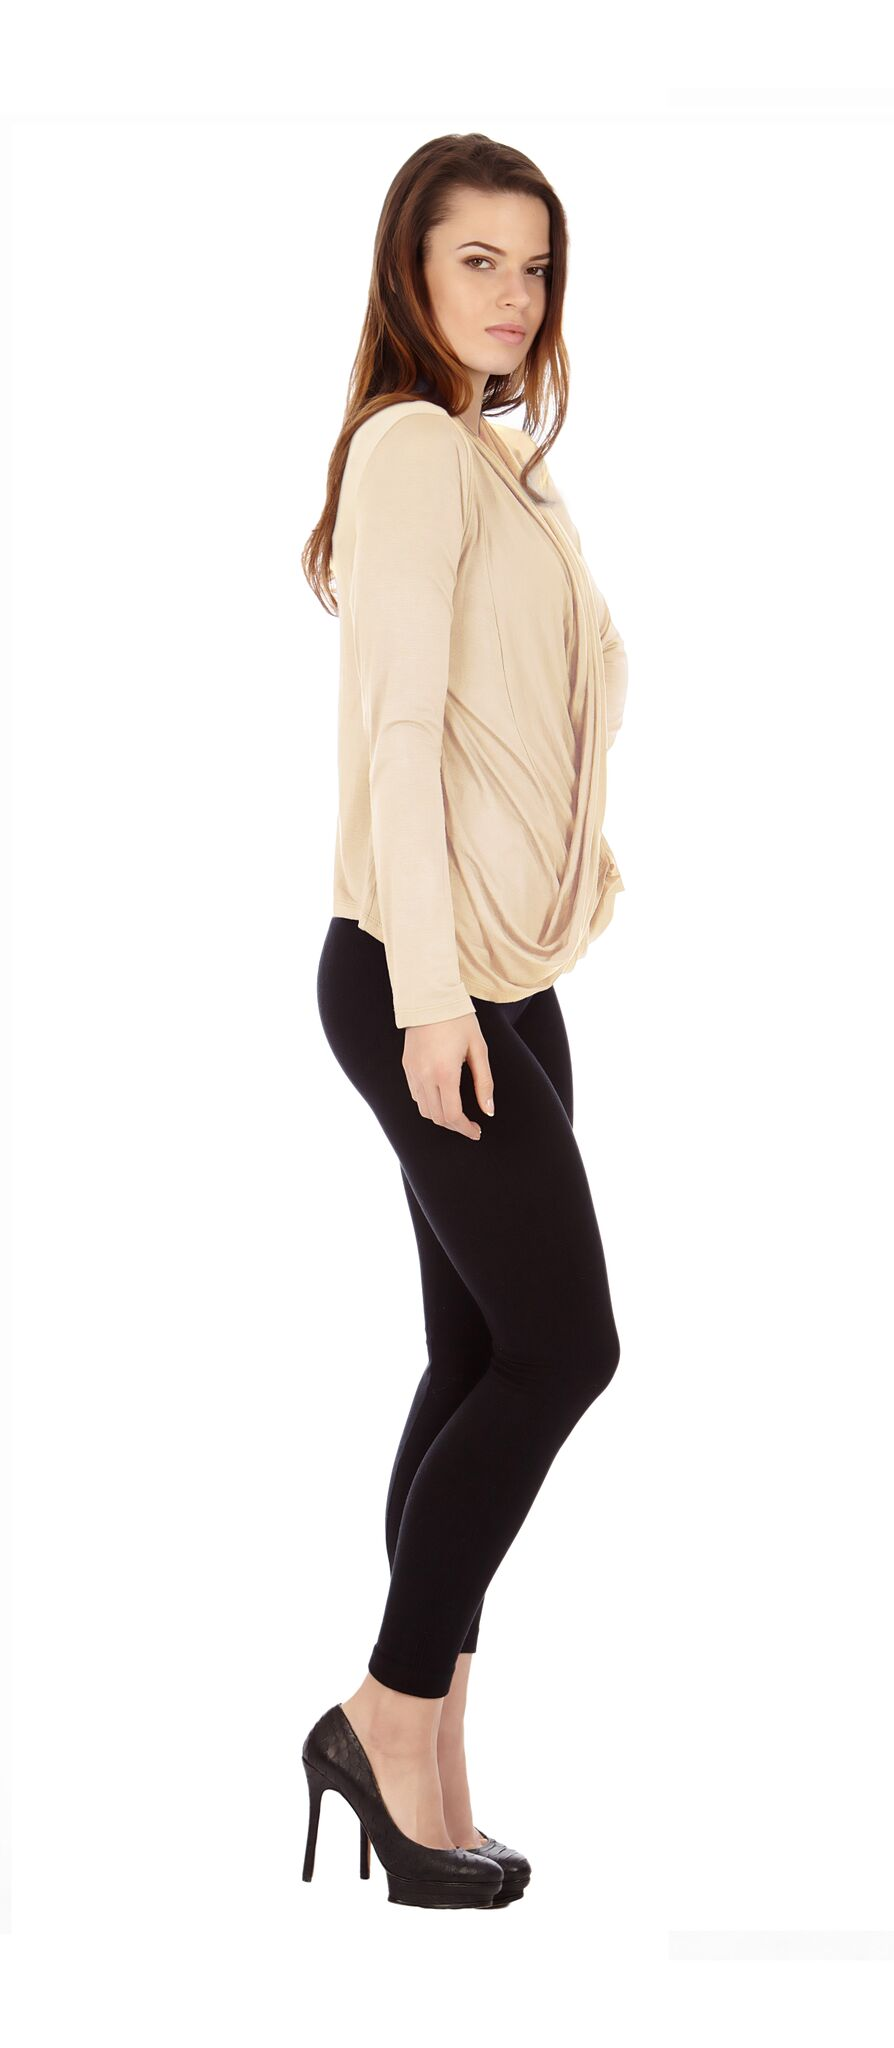 Sand Criss Cross Cardigan Sweaters - Home Goods Galore